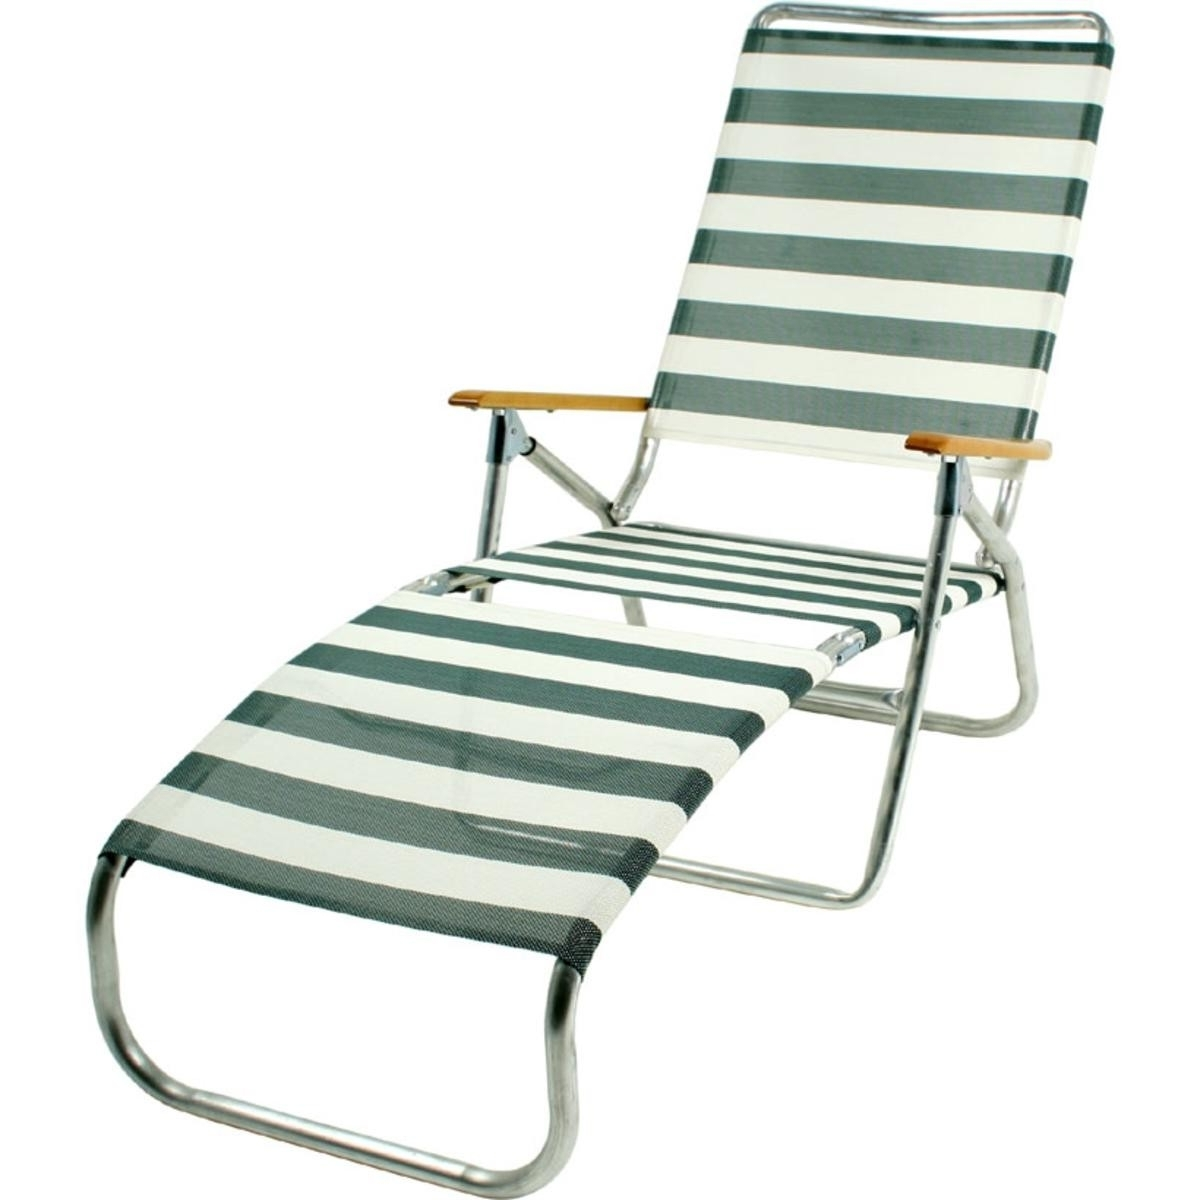 Folding Chaise Lounge Chairs Intended For Well Known Folding Beach Chaise Lounge Chairs Ideas With Idea  (View 10 of 15)